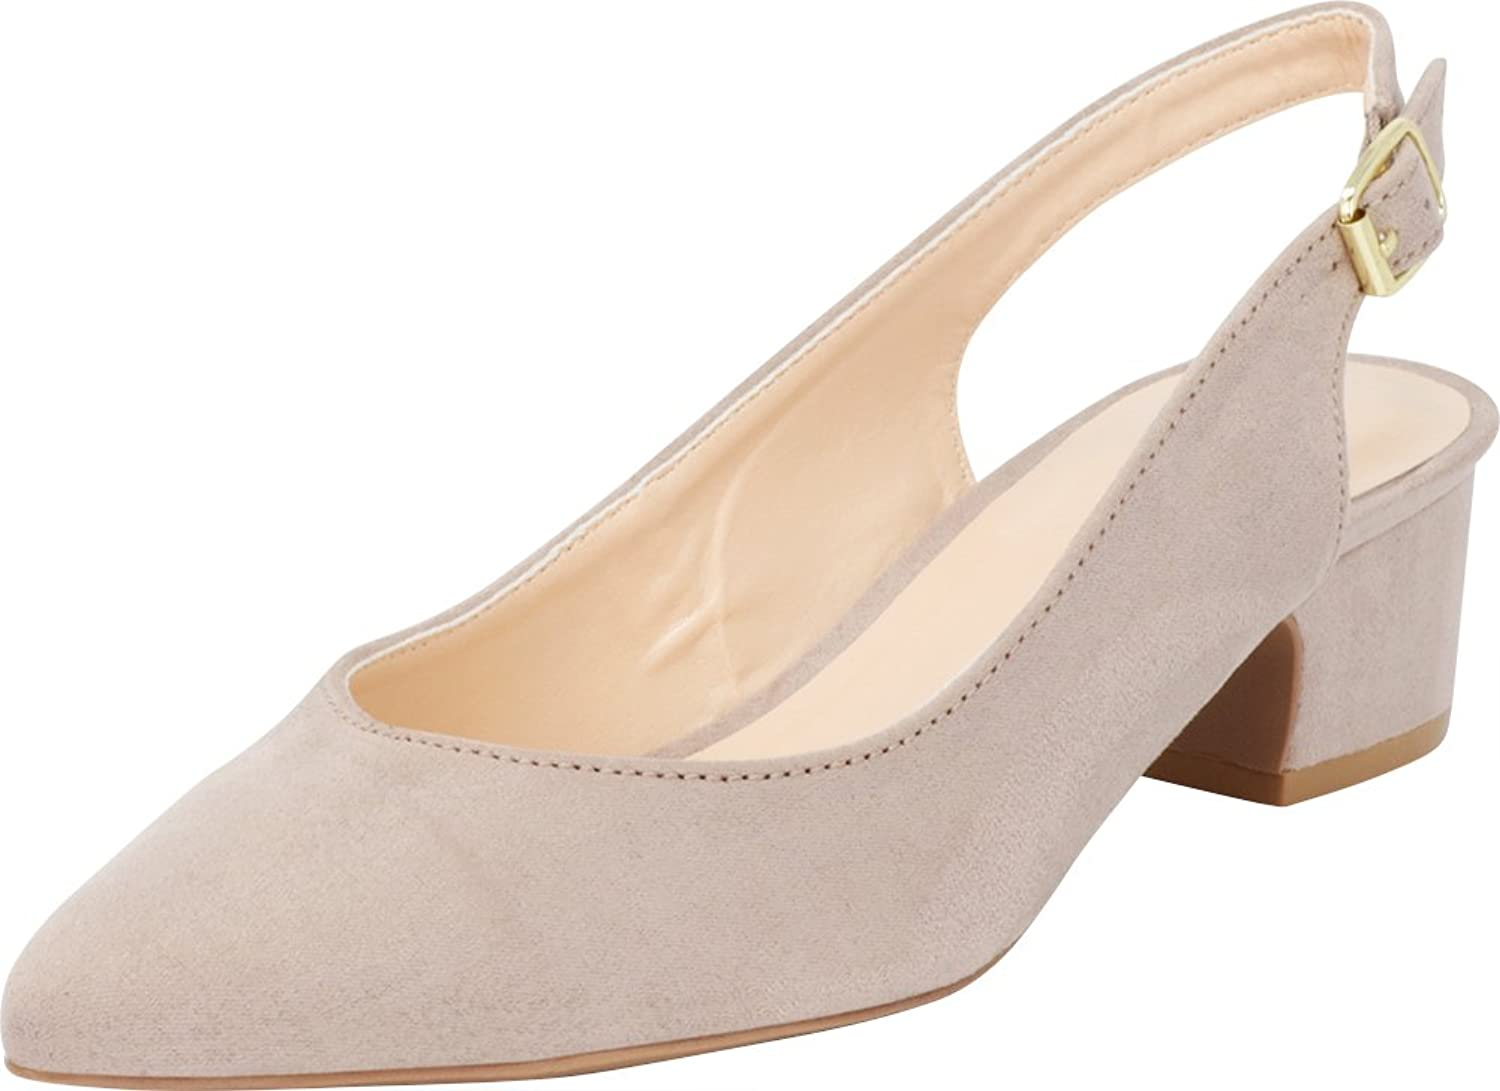 Cambridge Select Women's Closed Pointed Toe Buckled Slingback Chunky Block Mid Heel Pump